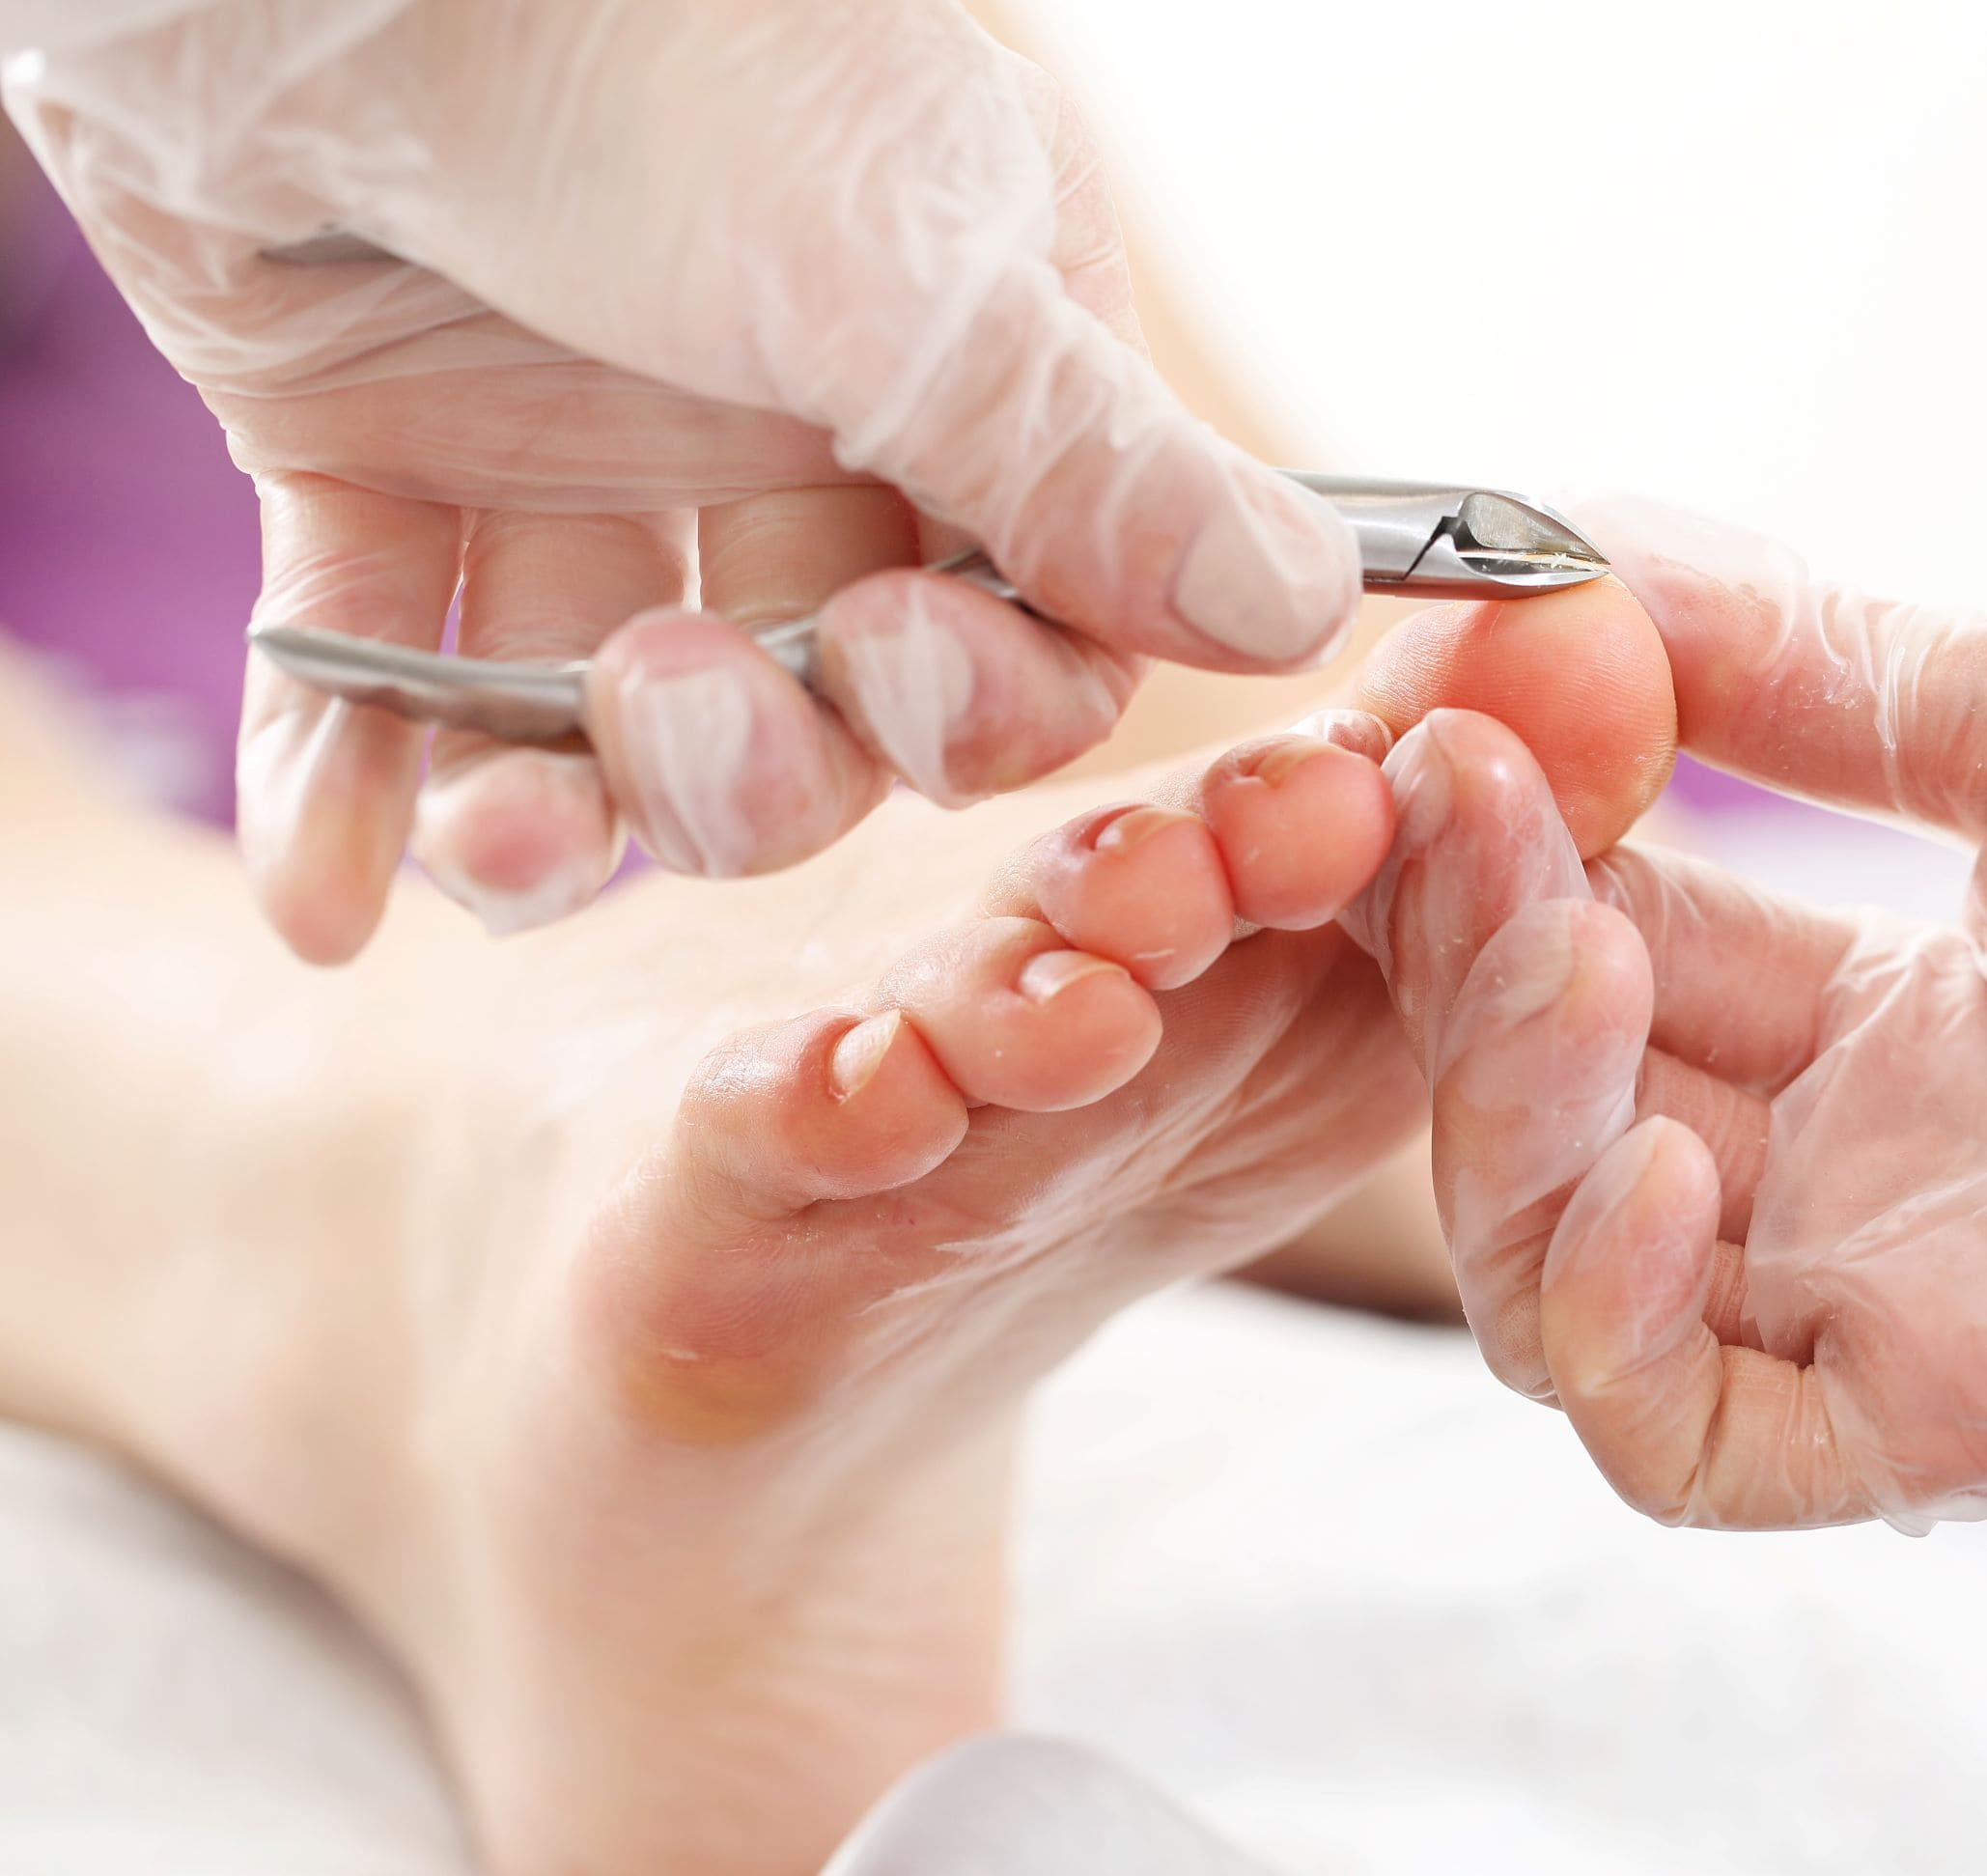 Clipping Toenails for Foot Care